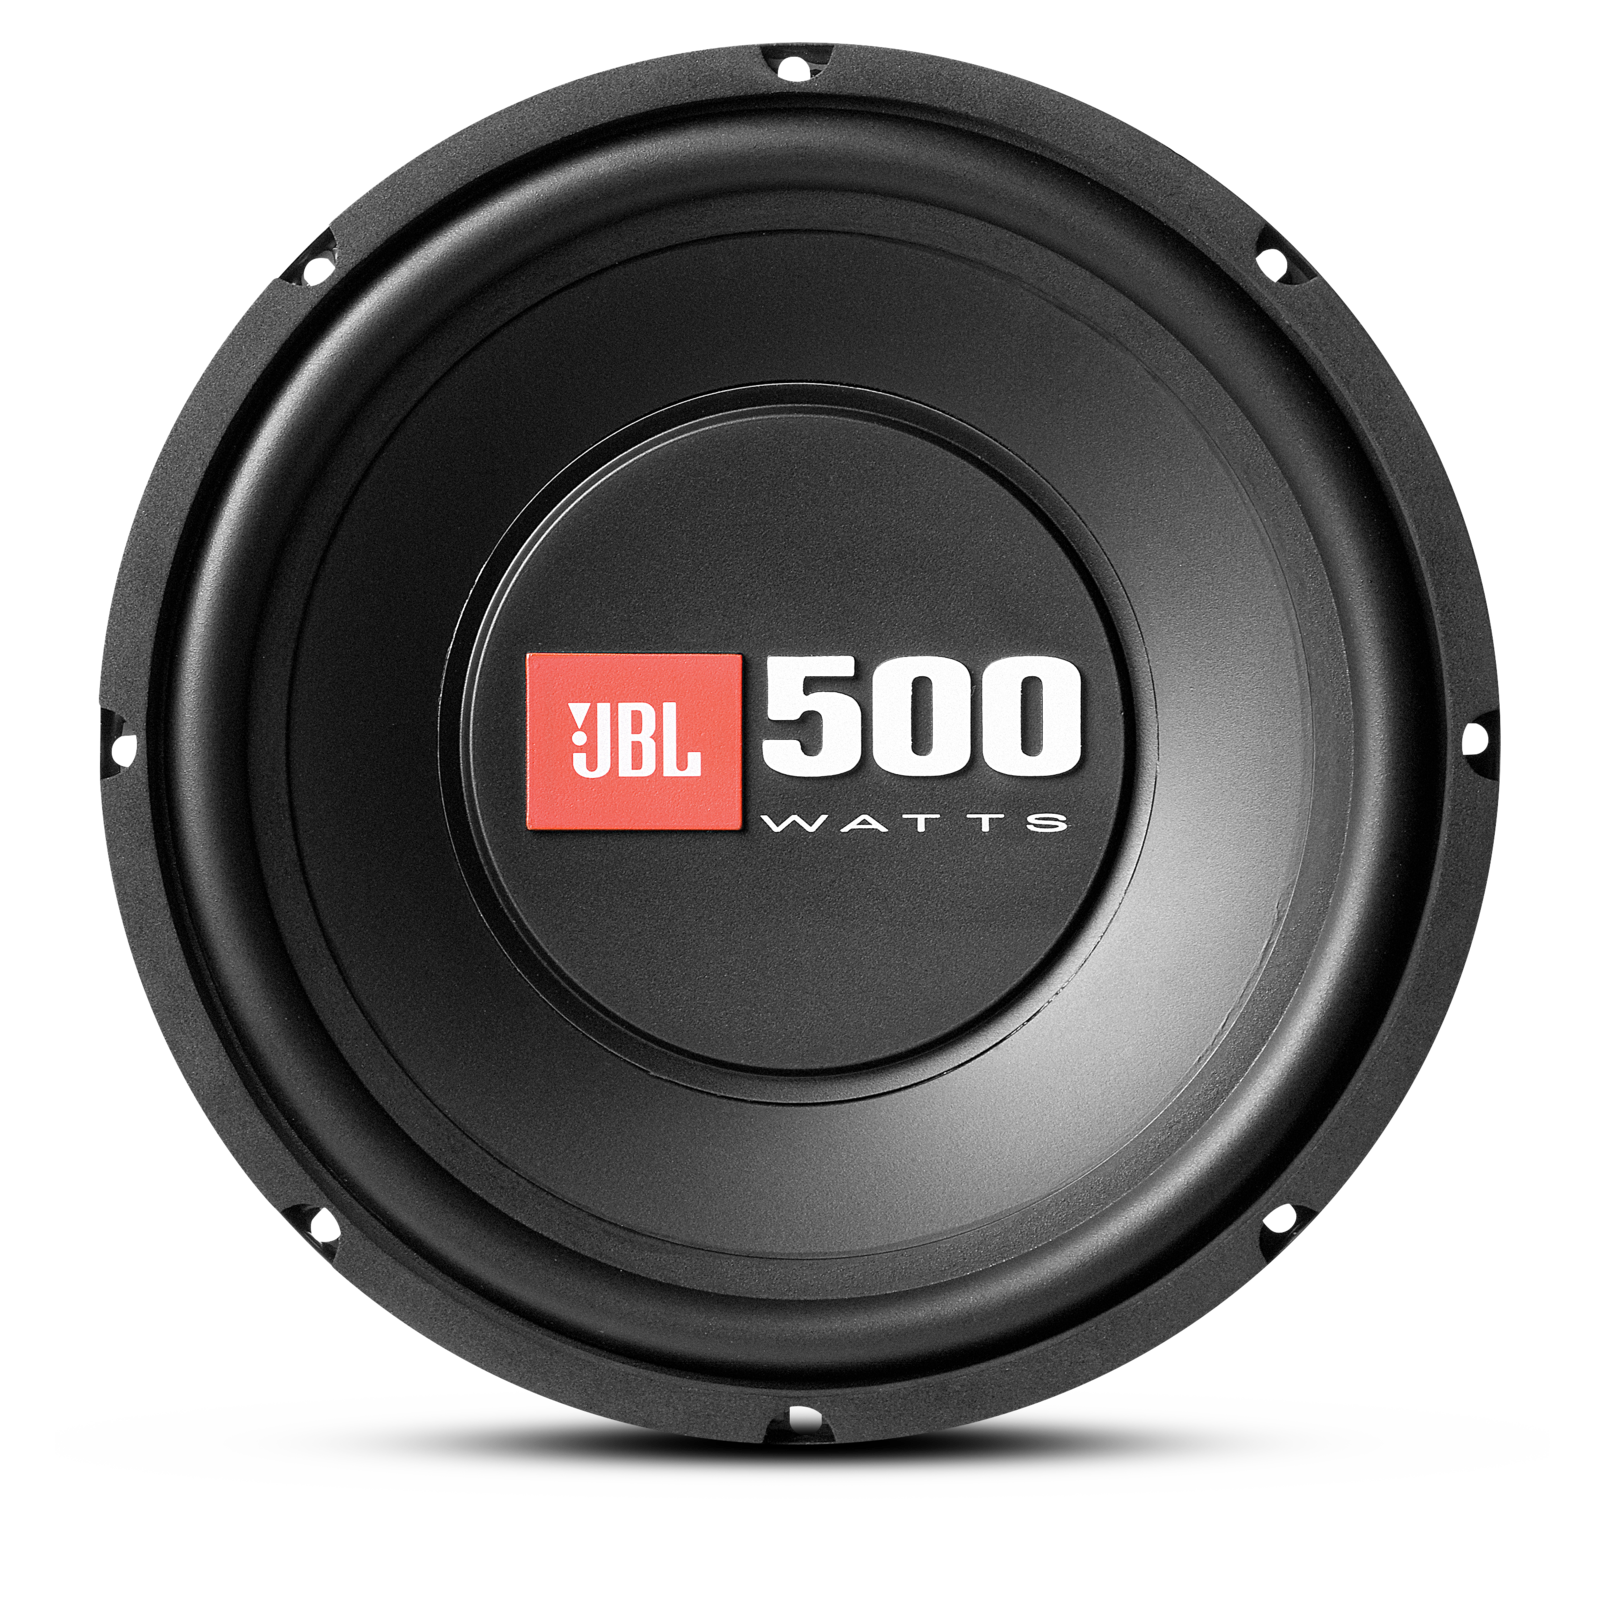 Cs1014 500 Watt 10 Single Voice Coil Subwoofer 15 Volts Power Output Of Each Speaker With 4 Ohm Impedance